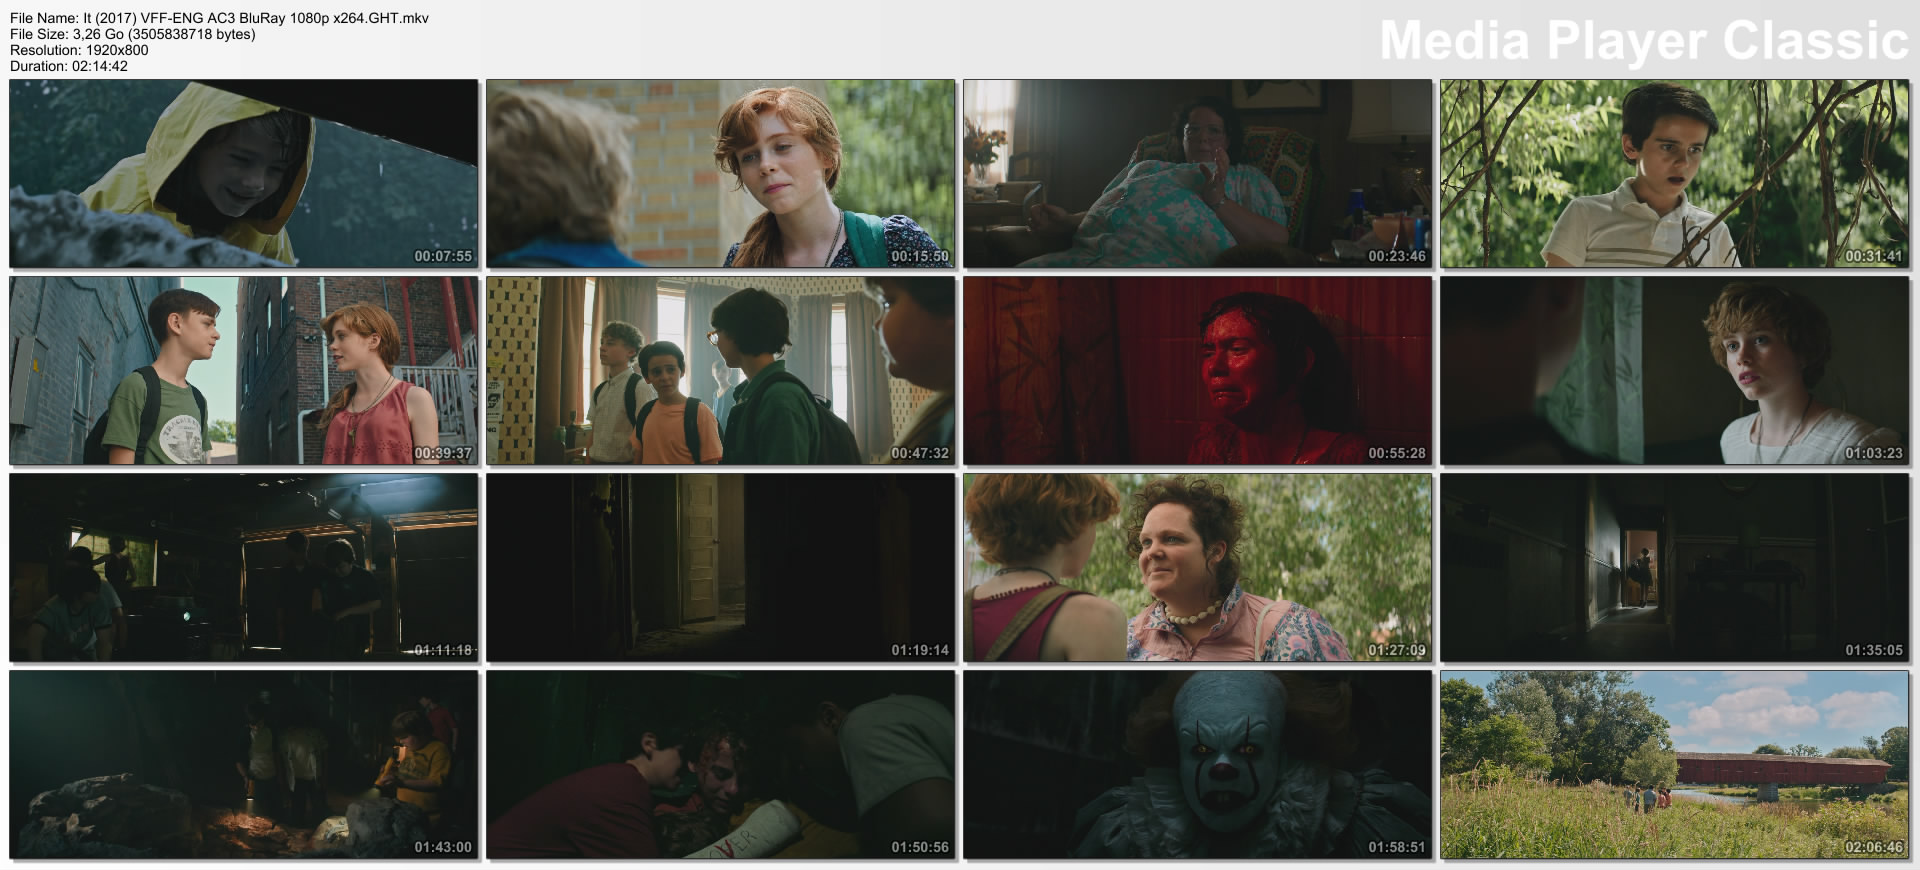 It (2017) VFF-ENG AC3 BluRay 1080p x264.GHT